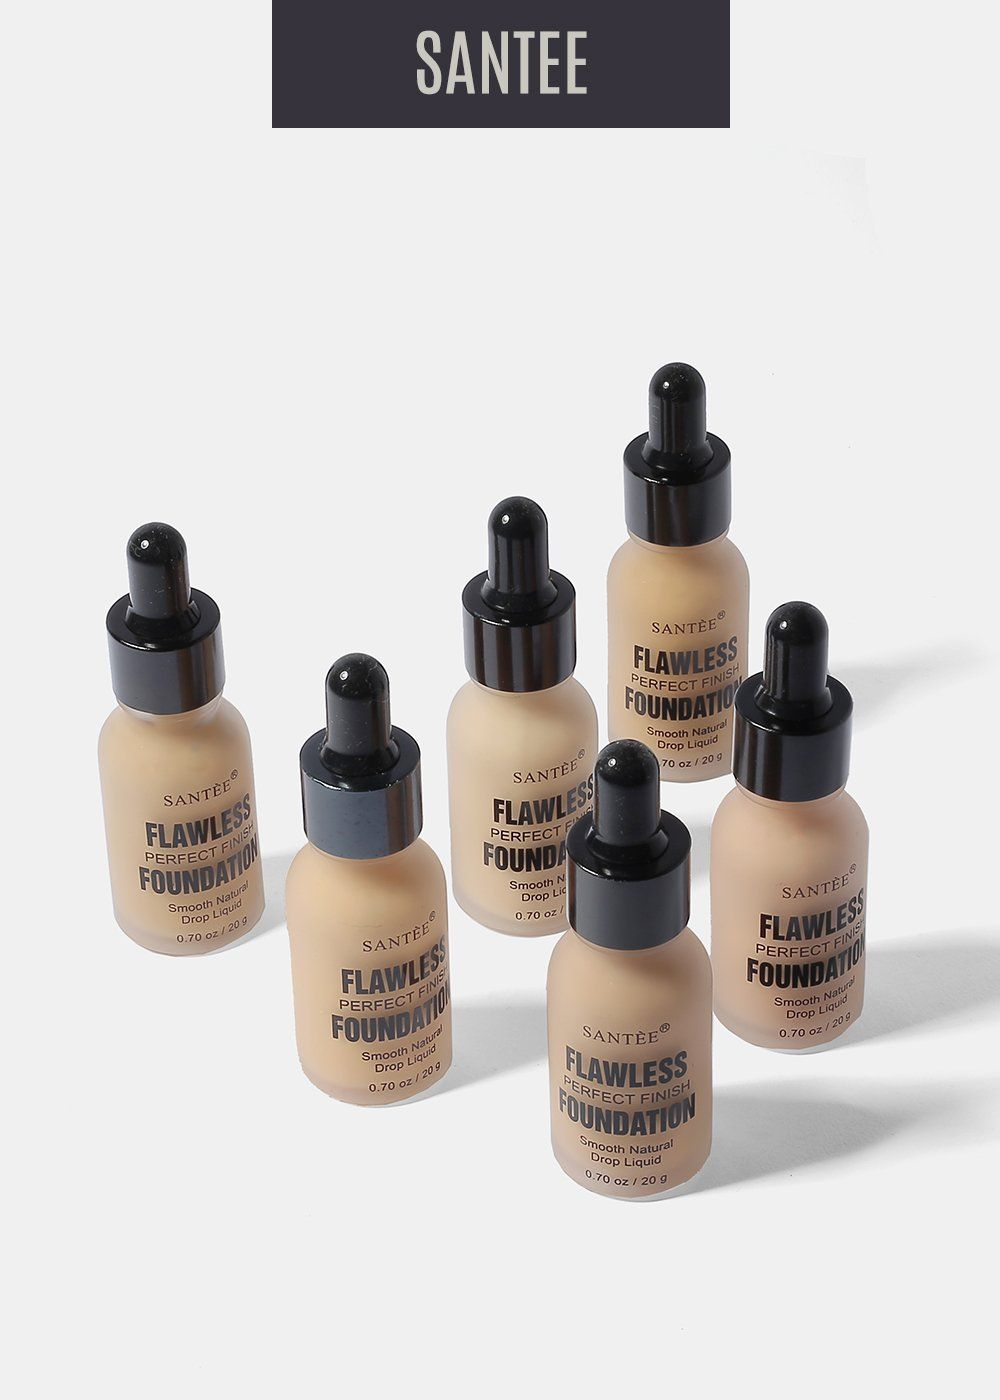 Flawless liquid foundation shopmissa pinterest liquid flawless liquid foundation solutioingenieria Choice Image